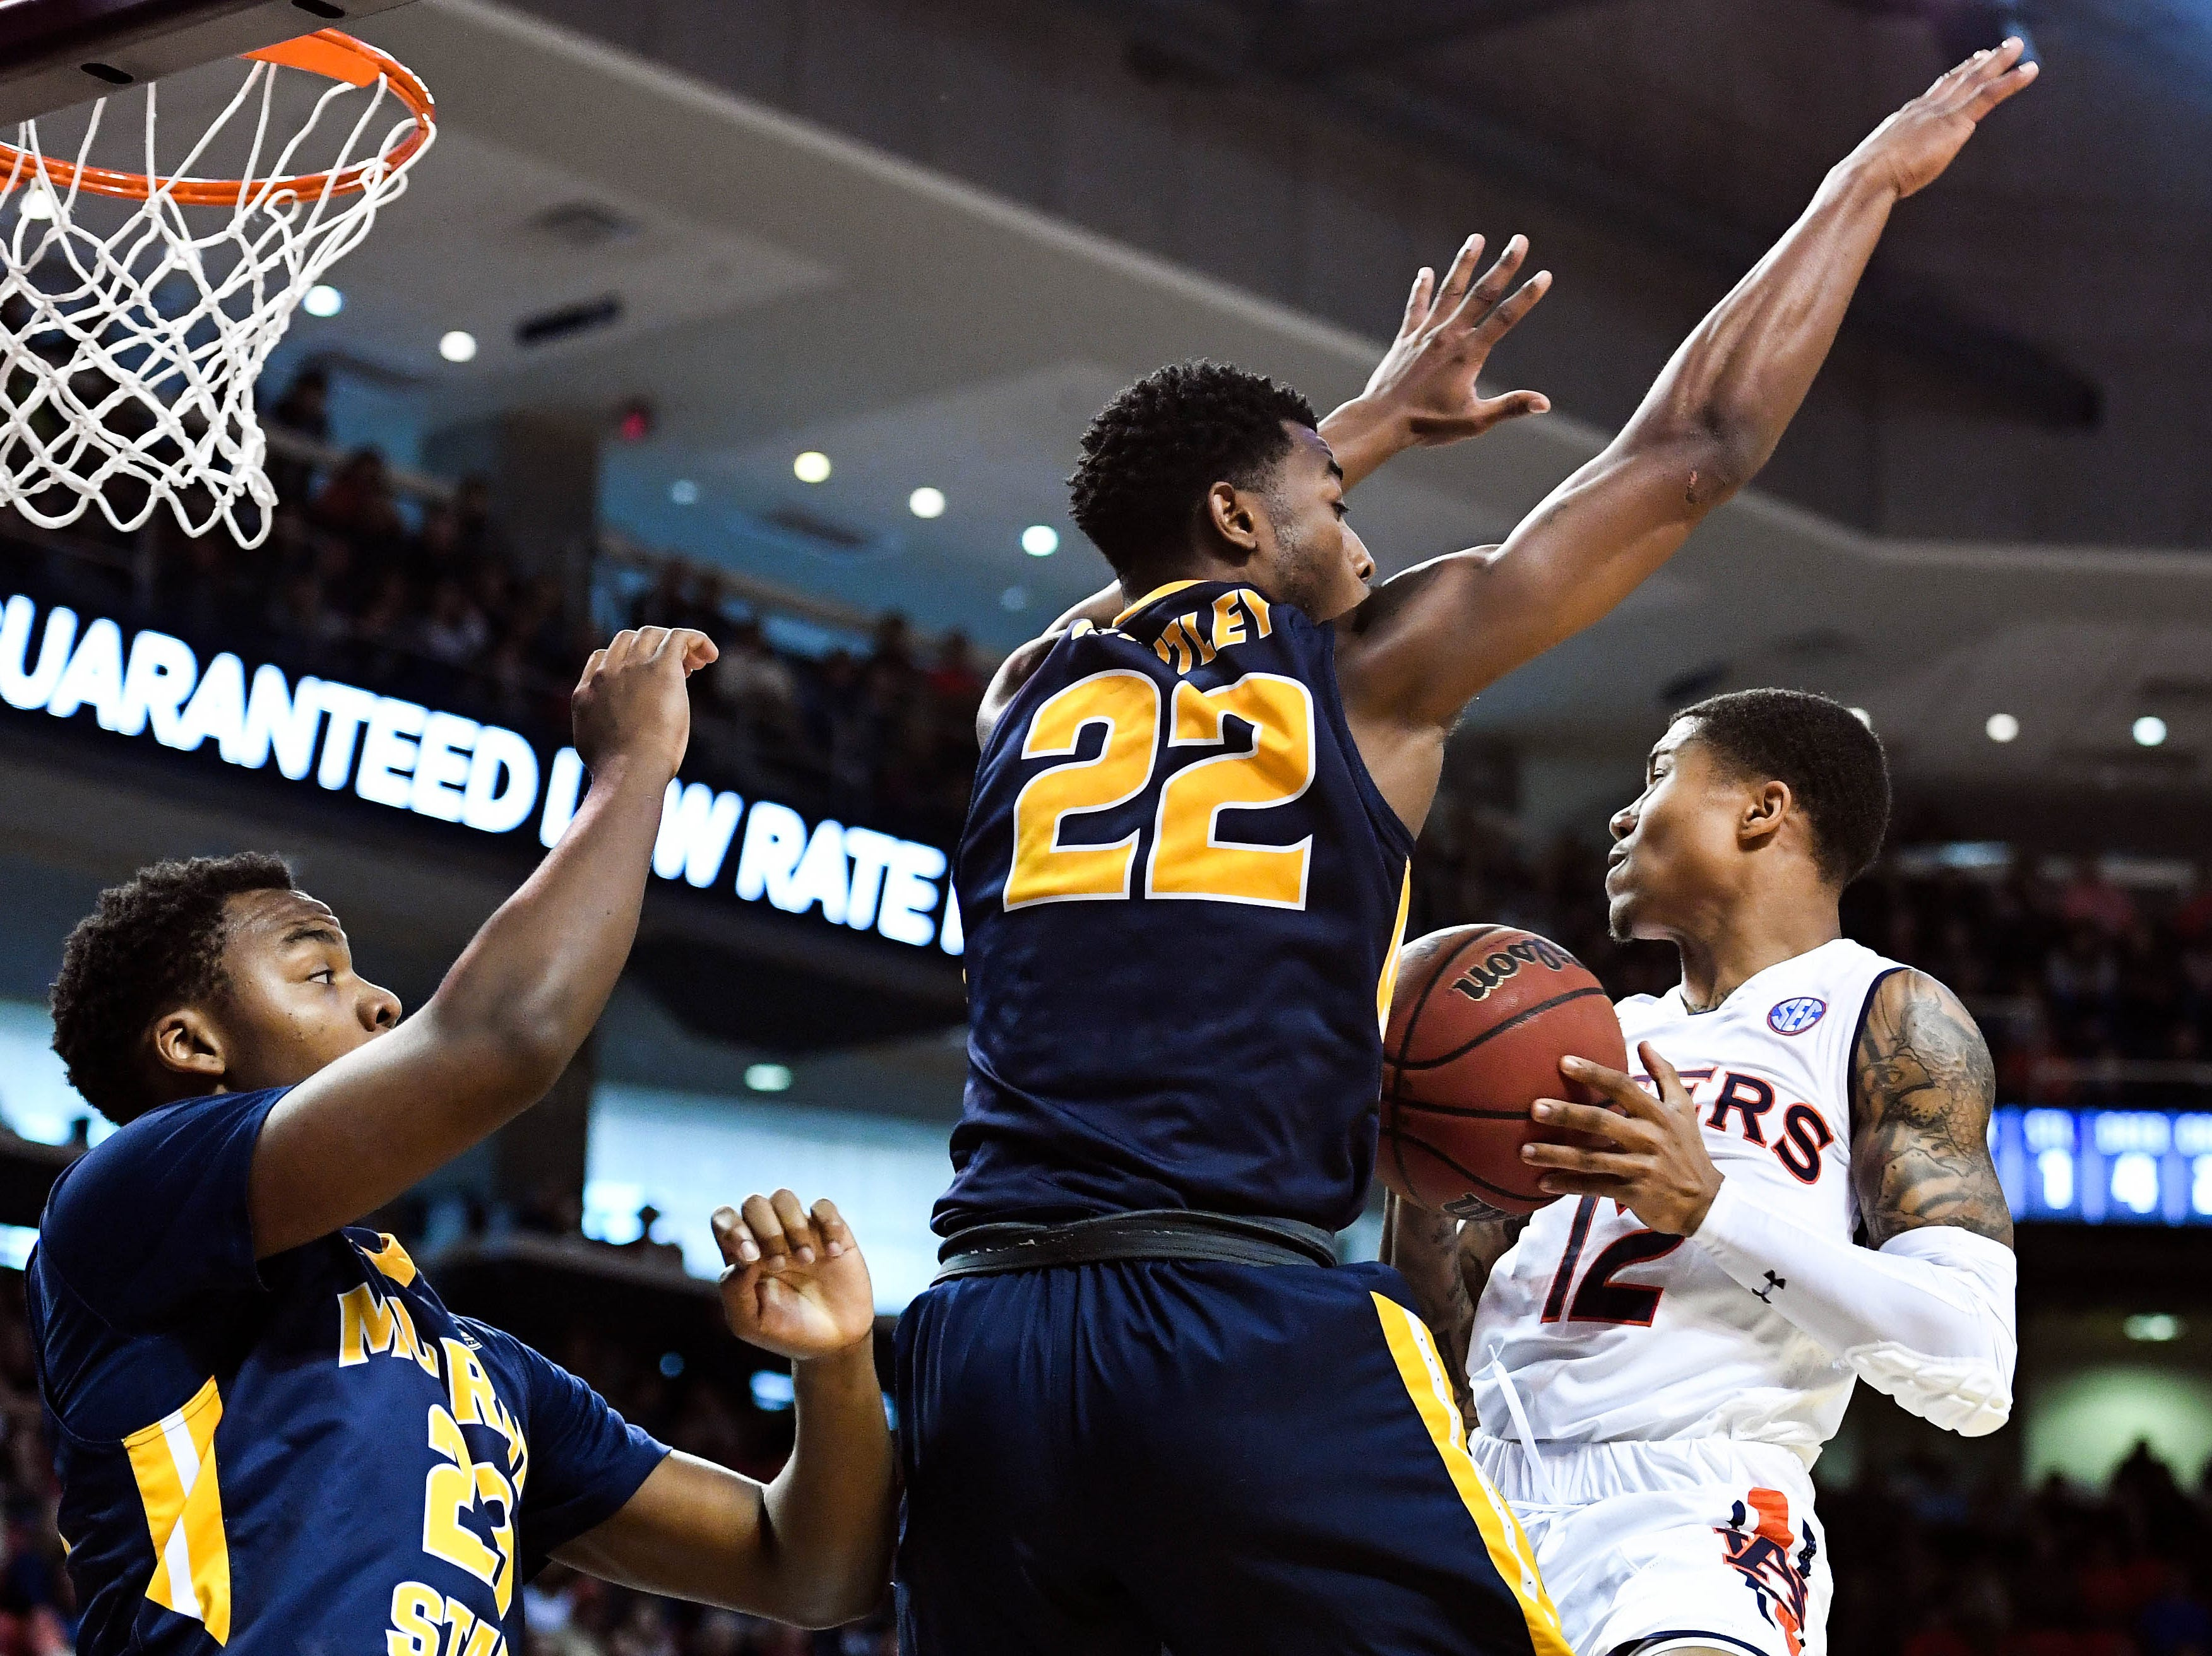 Dec 22, 2018; Auburn, AL, USA; Auburn Tigers guard J'Von McCormick (12) is defended at the net by Murray State Racers guard Brion Whitley (22) and forward KJ Williams (23) during the first half at Auburn Arena. Mandatory Credit: Shanna Lockwood-USA TODAY Sports